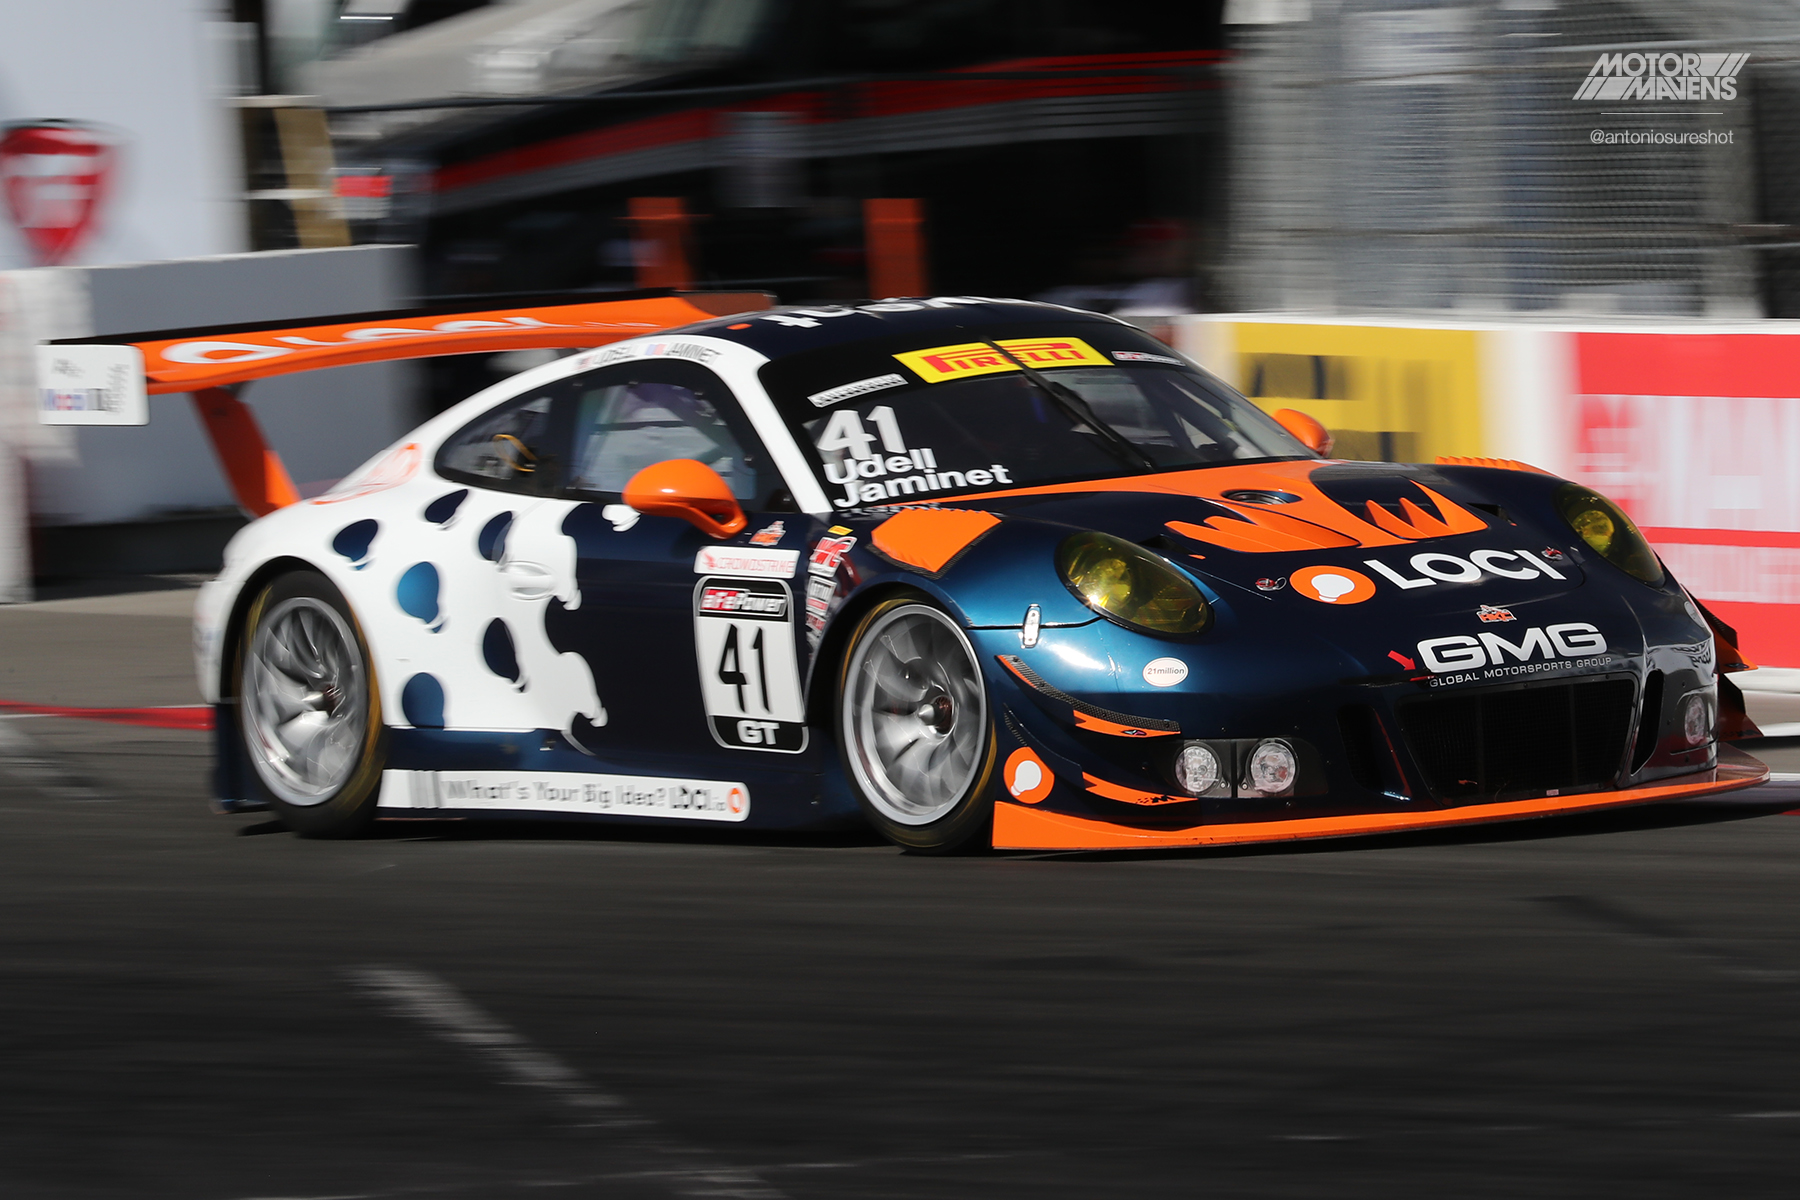 Porsche 911, 991, 911 GT3R, 911 GT3, Pirelli World Challenge, Long Beach Grand Prix, Pirelli, Alex Udell